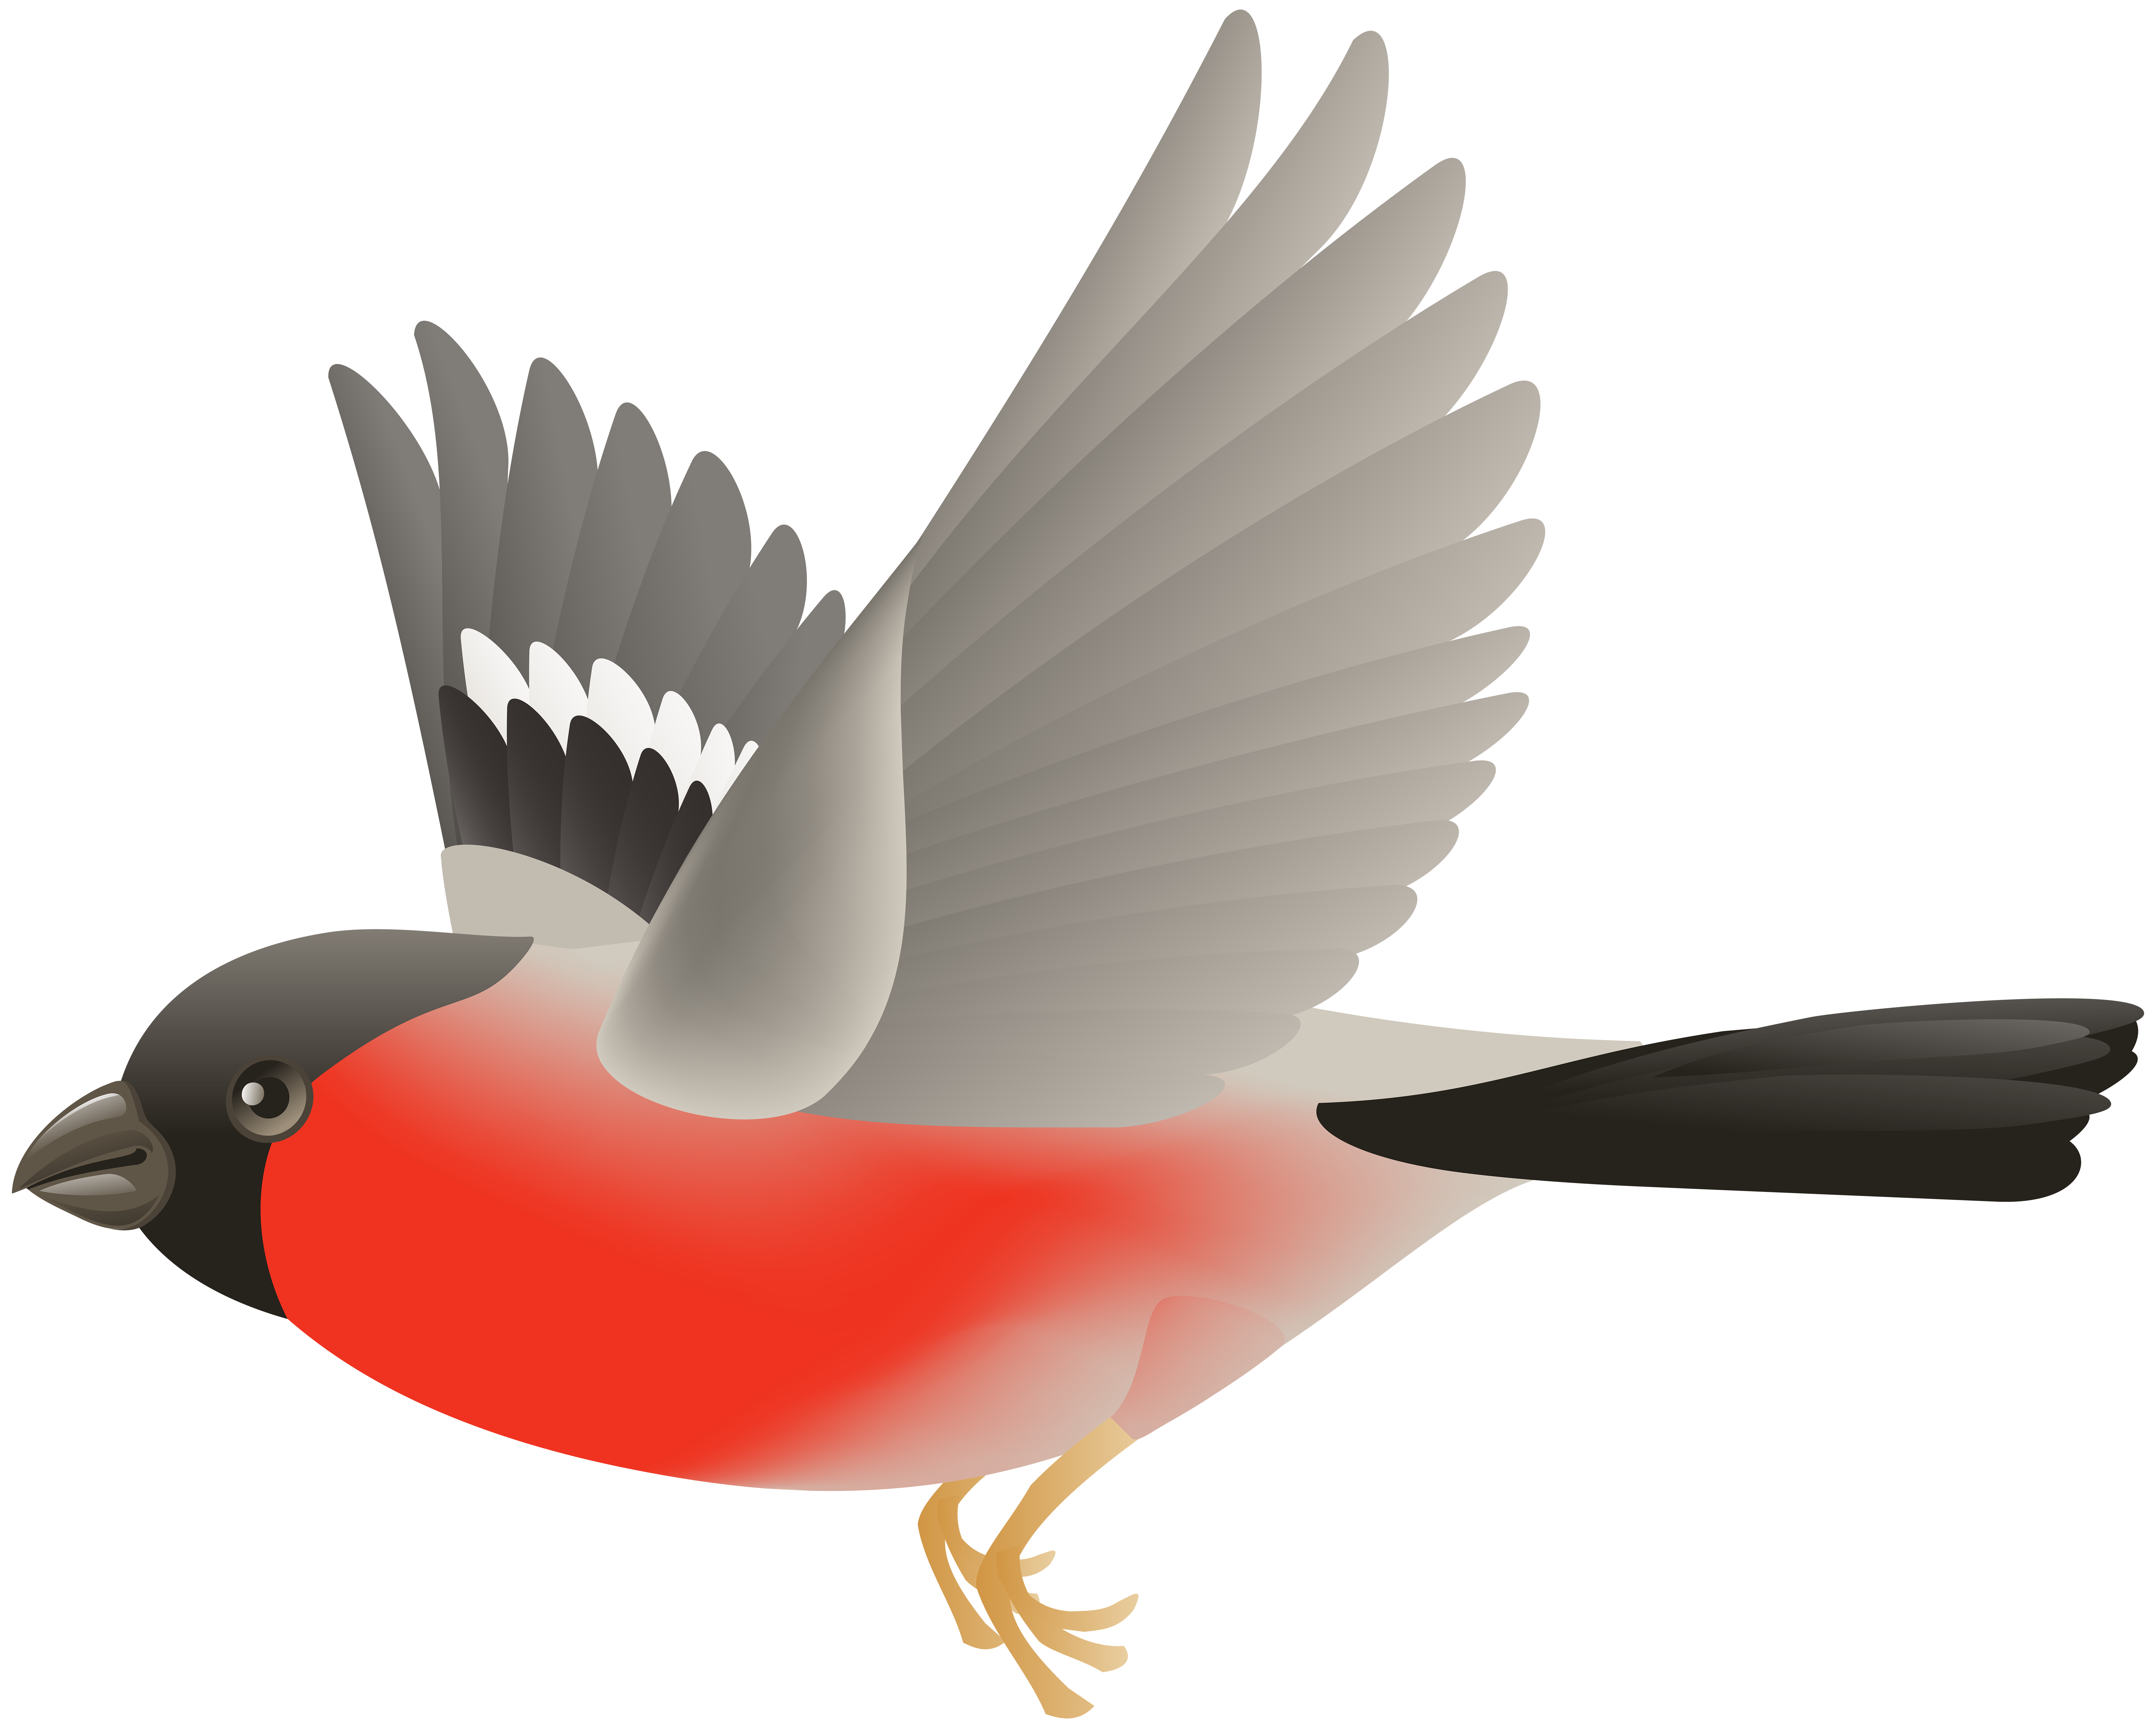 Red Flying Bird Transparent Clip Art Image.